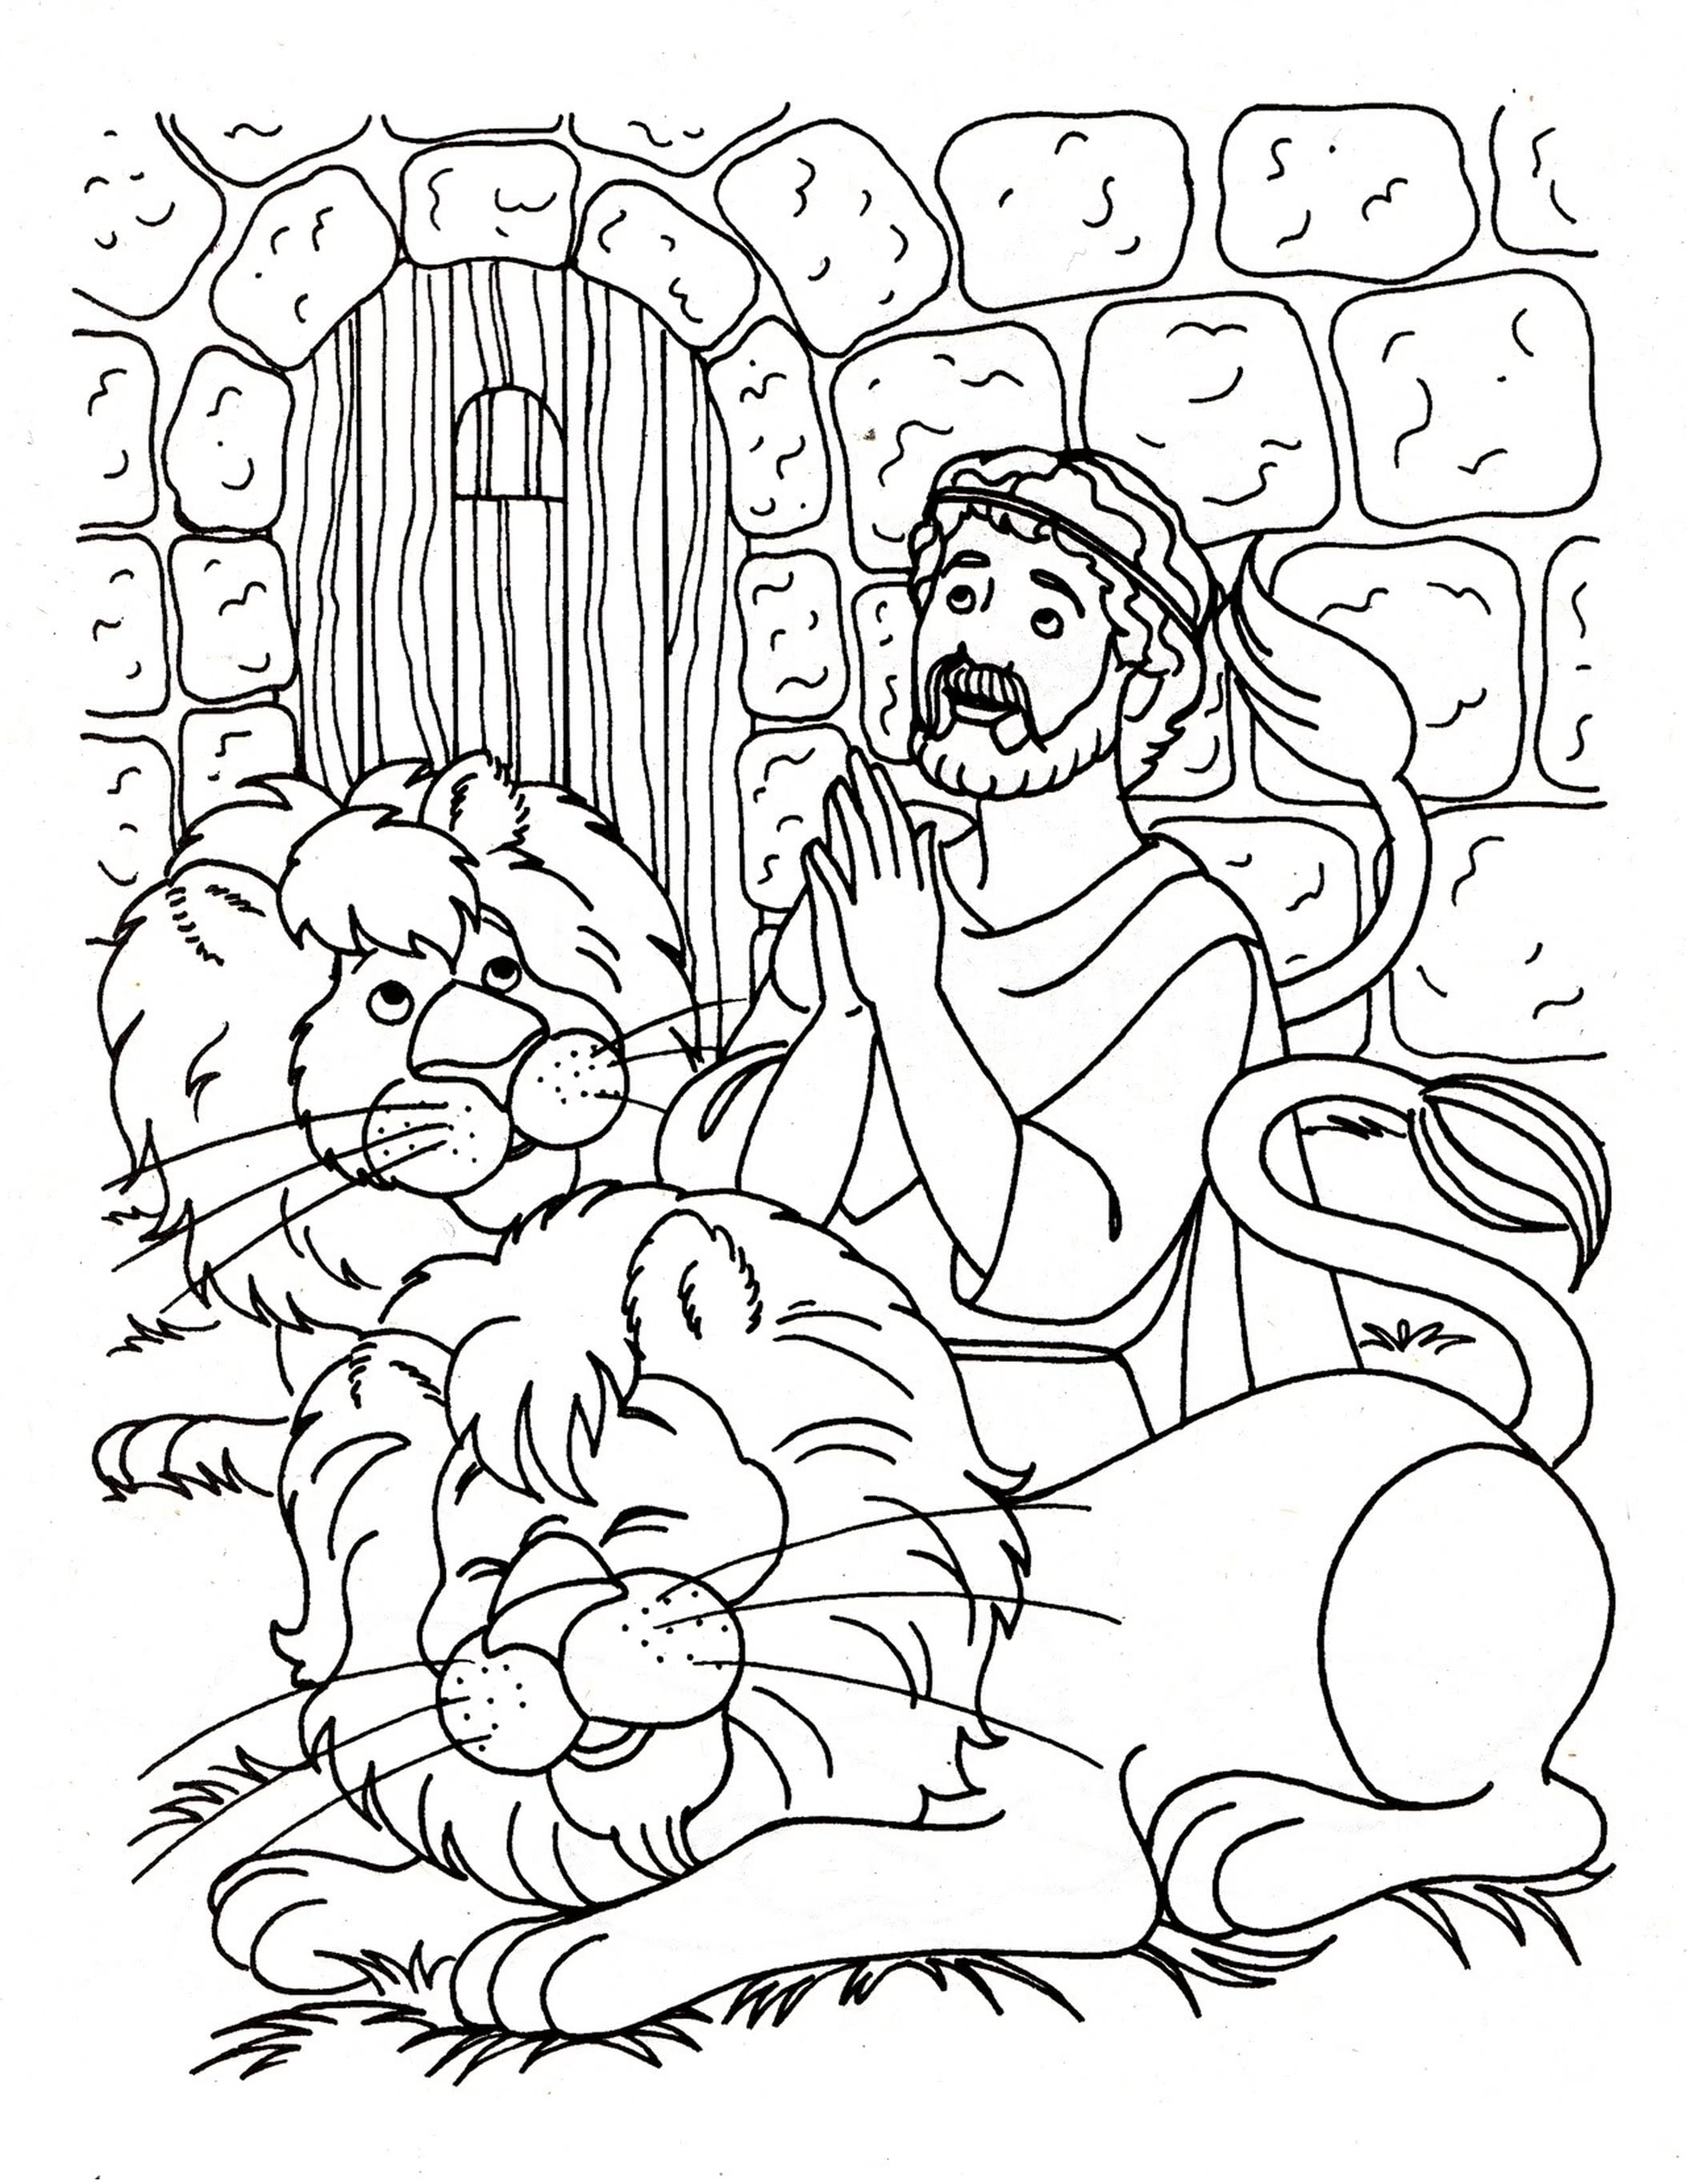 Daniel Coloring Pages For And The Lions Den At Bloodbrothers Me In